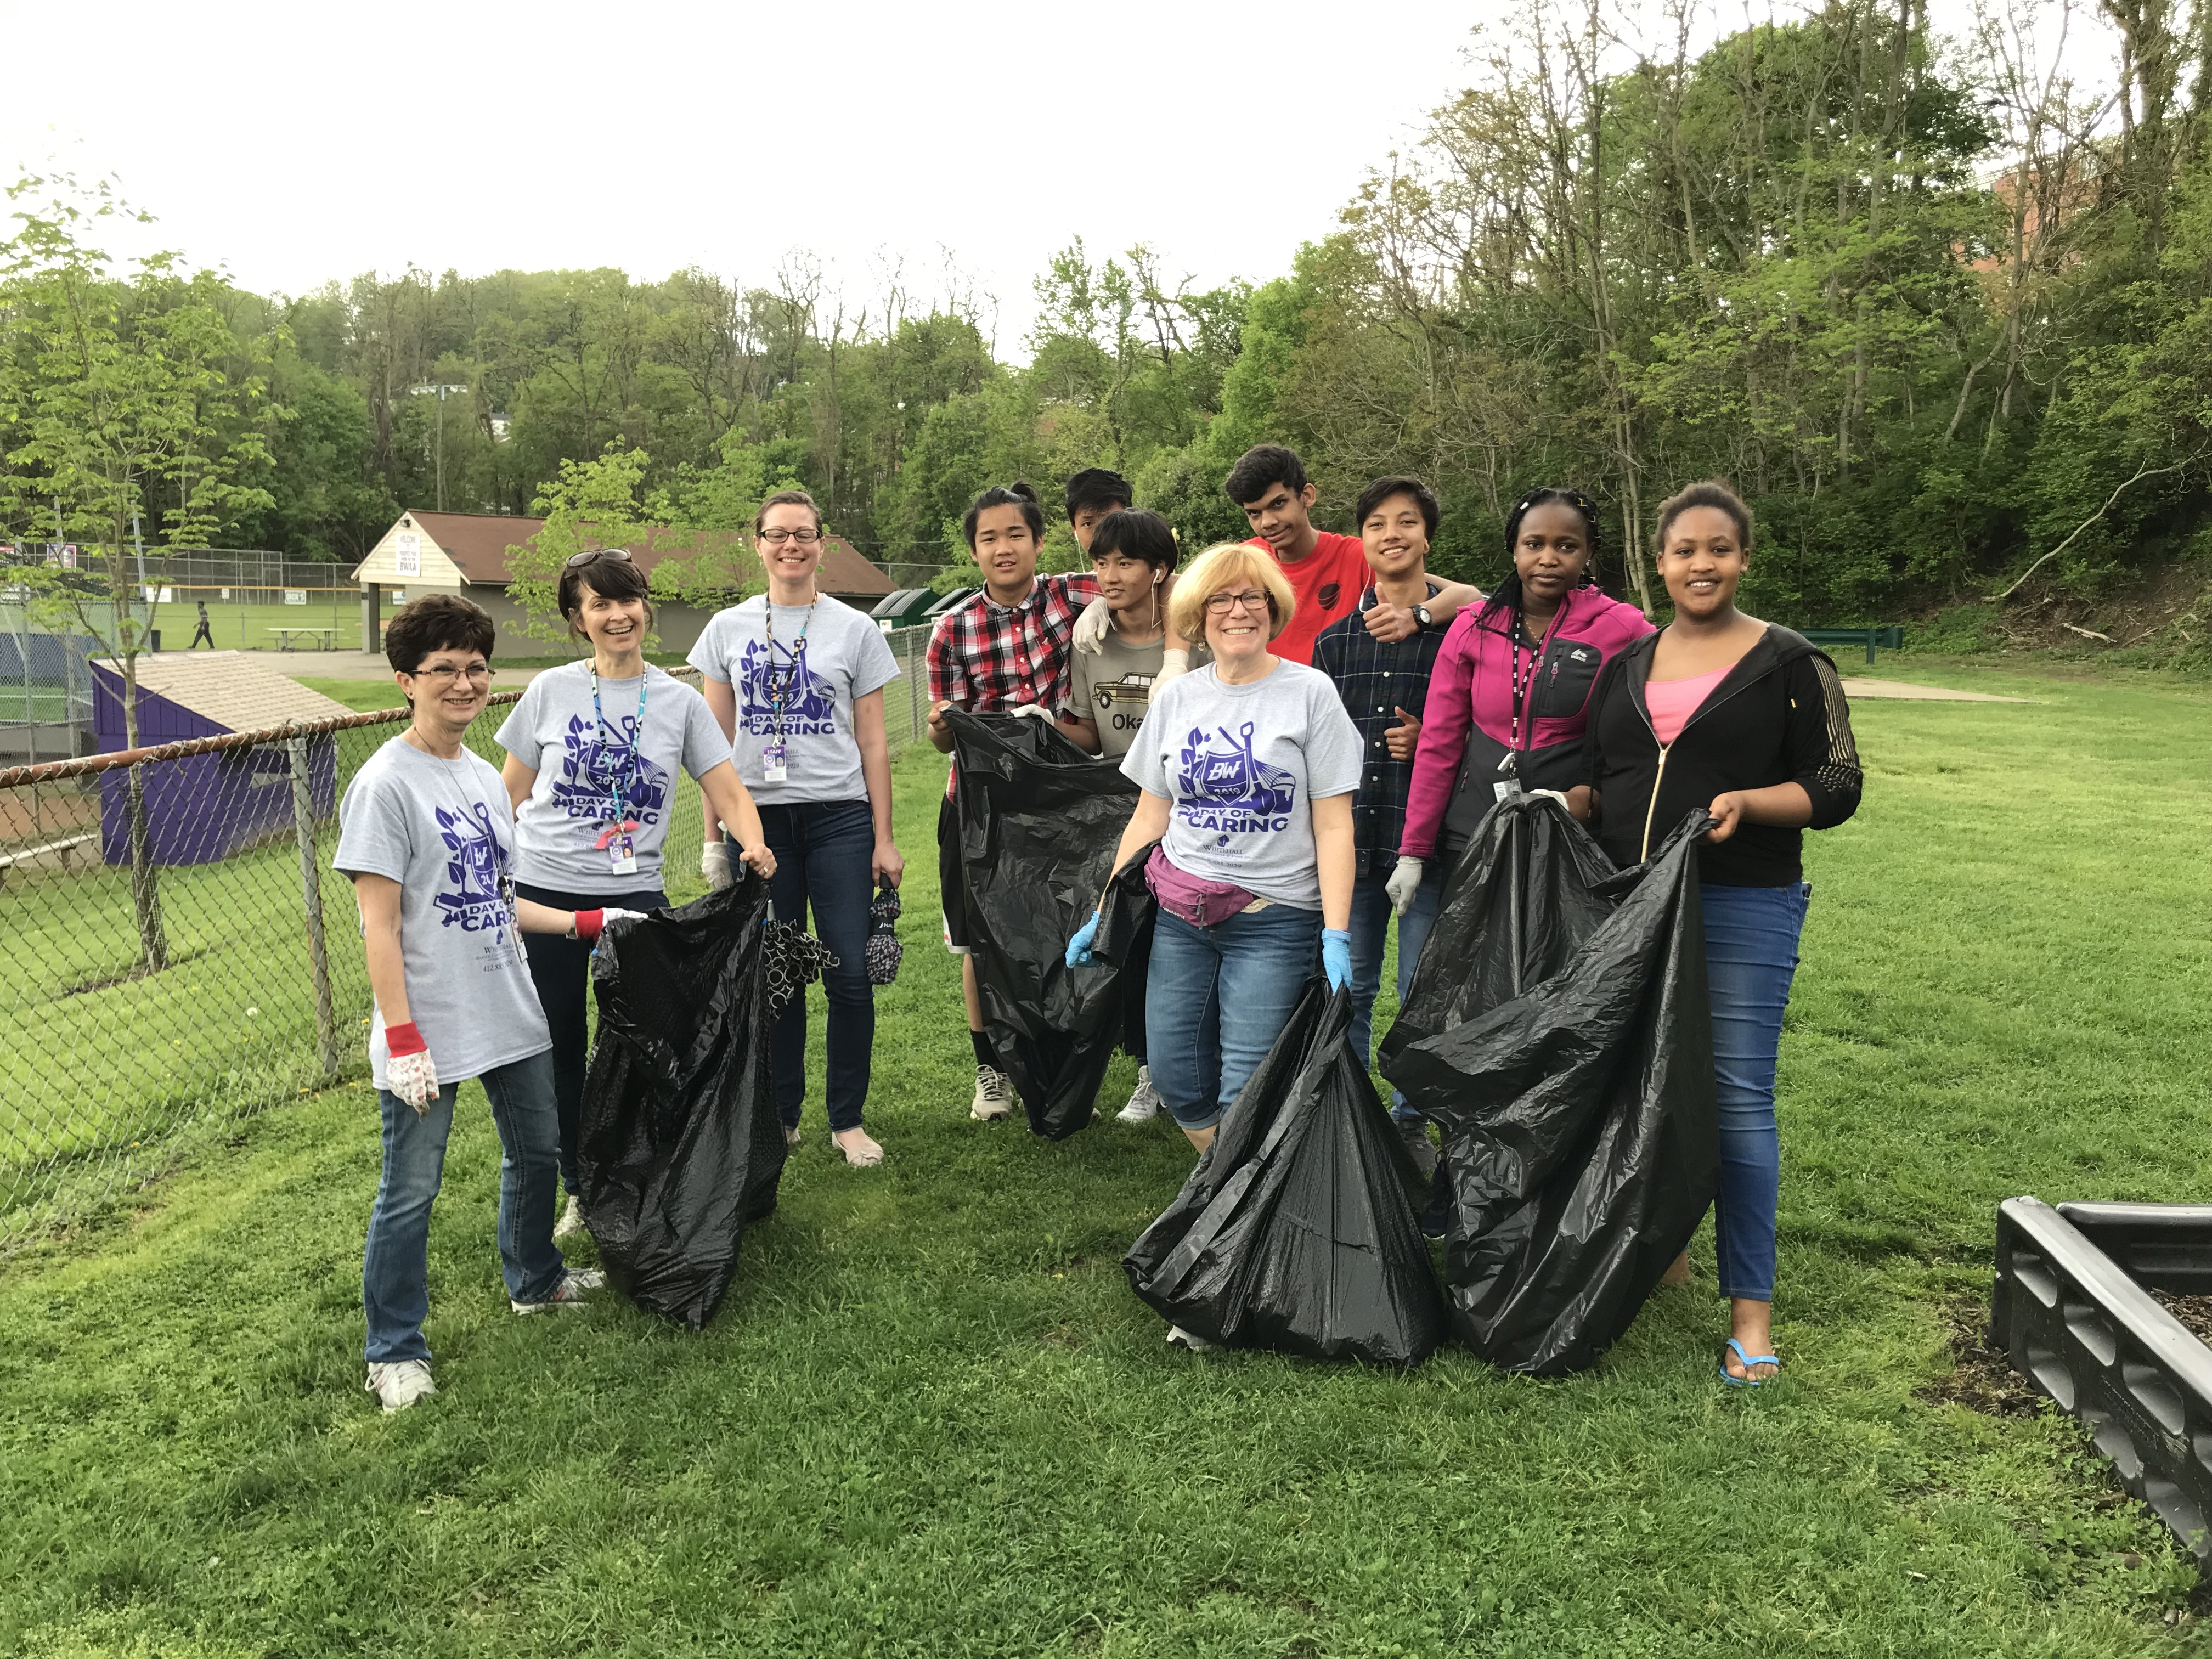 As part of a school community outreach event, Pittsburgh-area students shopped for groceries, repaired sinks and trimmed hedges. This school community engagement strategy was meant to connect with senior citizens who pay taxes but have no other ties to the district.